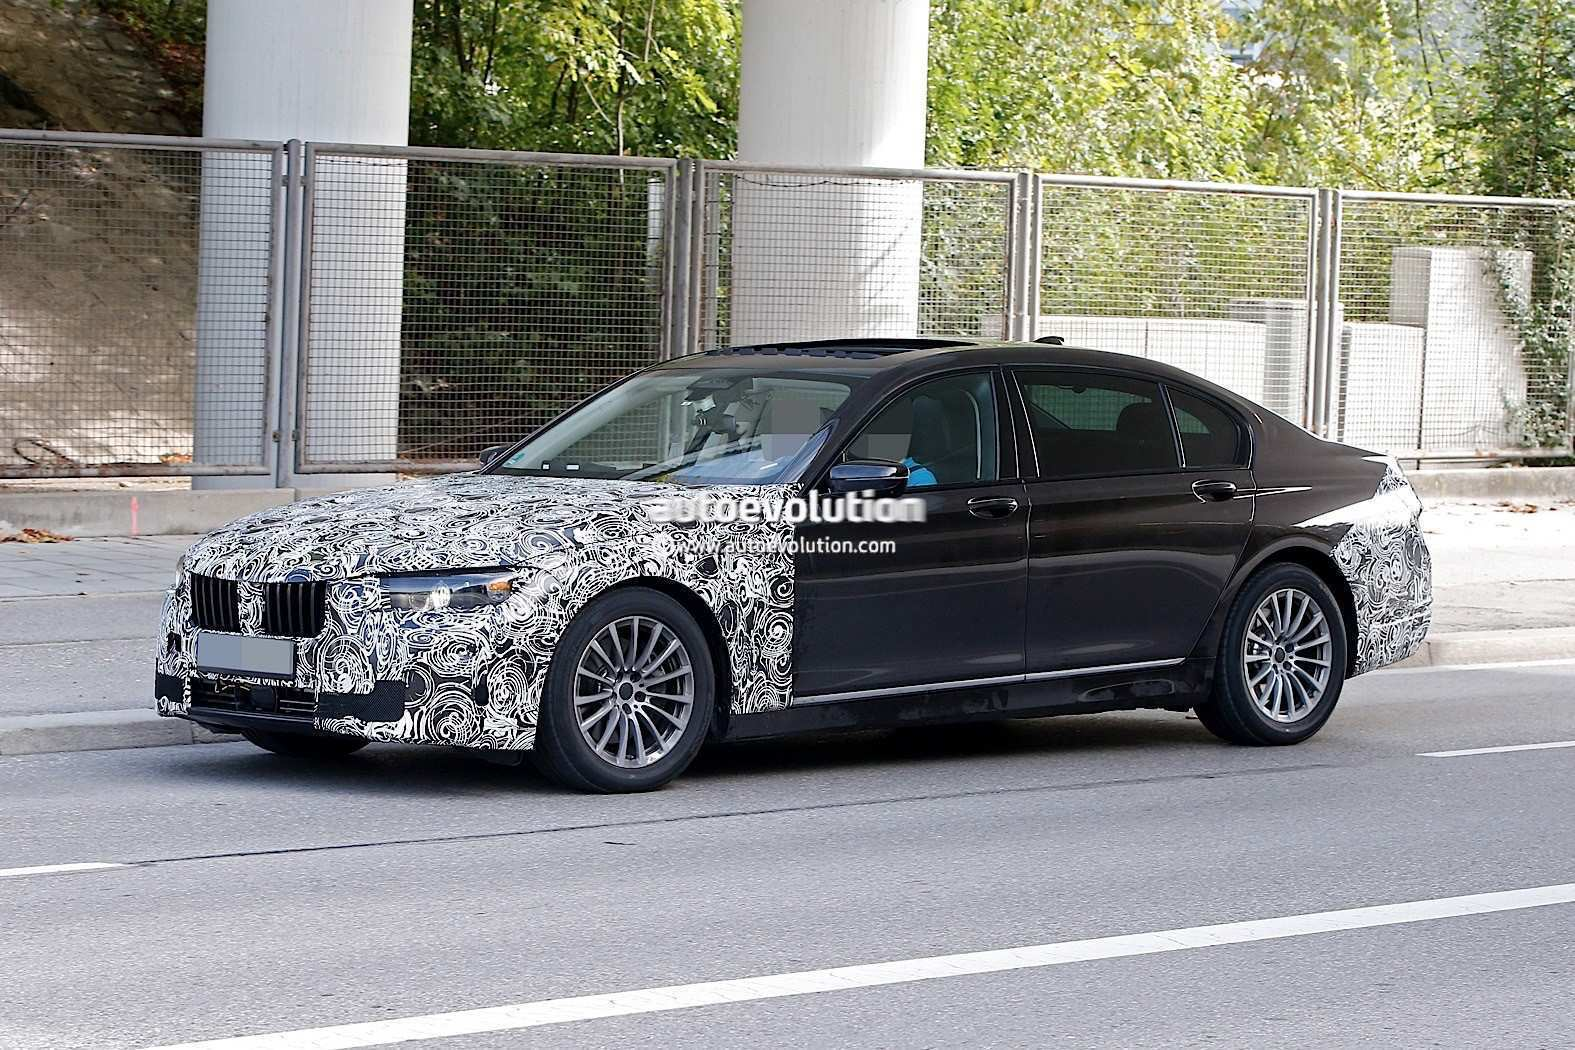 88 Great 2019 Bmw 7 Series Lci Specs by 2019 Bmw 7 Series Lci